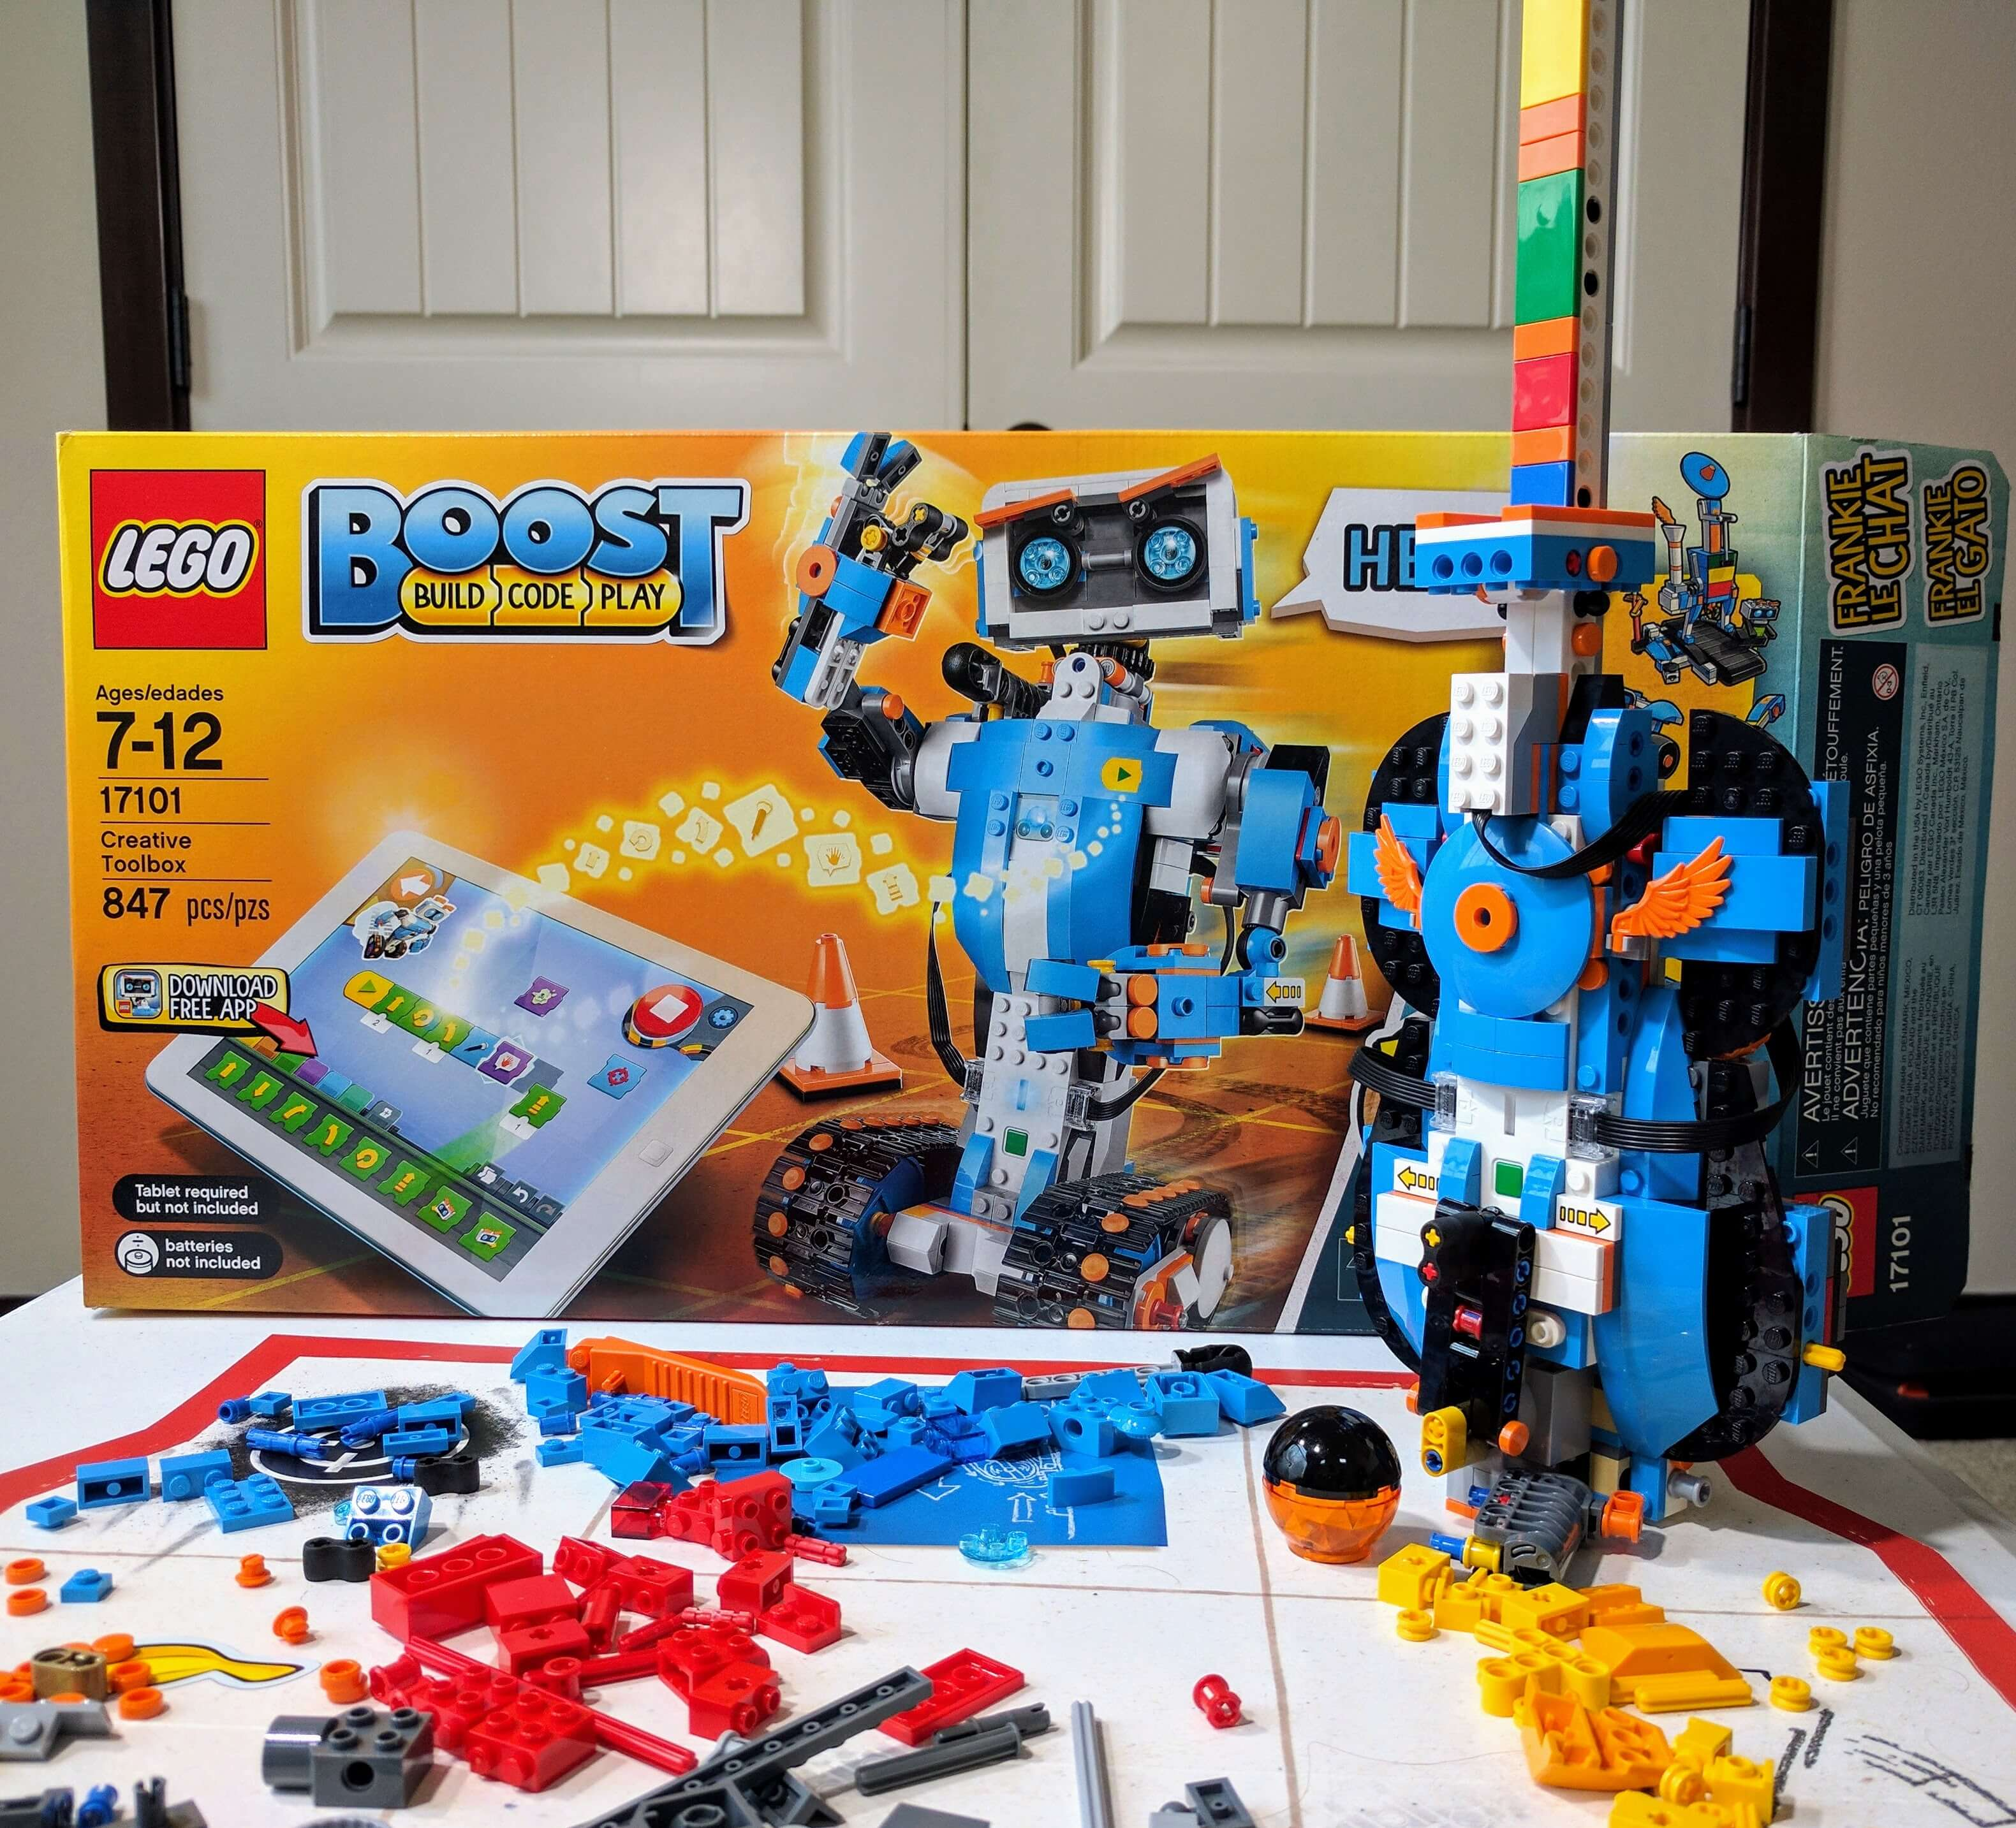 Problem Solving Archives Learn Richly Circuit Maze Thinkfun Lego Boost Box With The Guitar Model Standing In Front